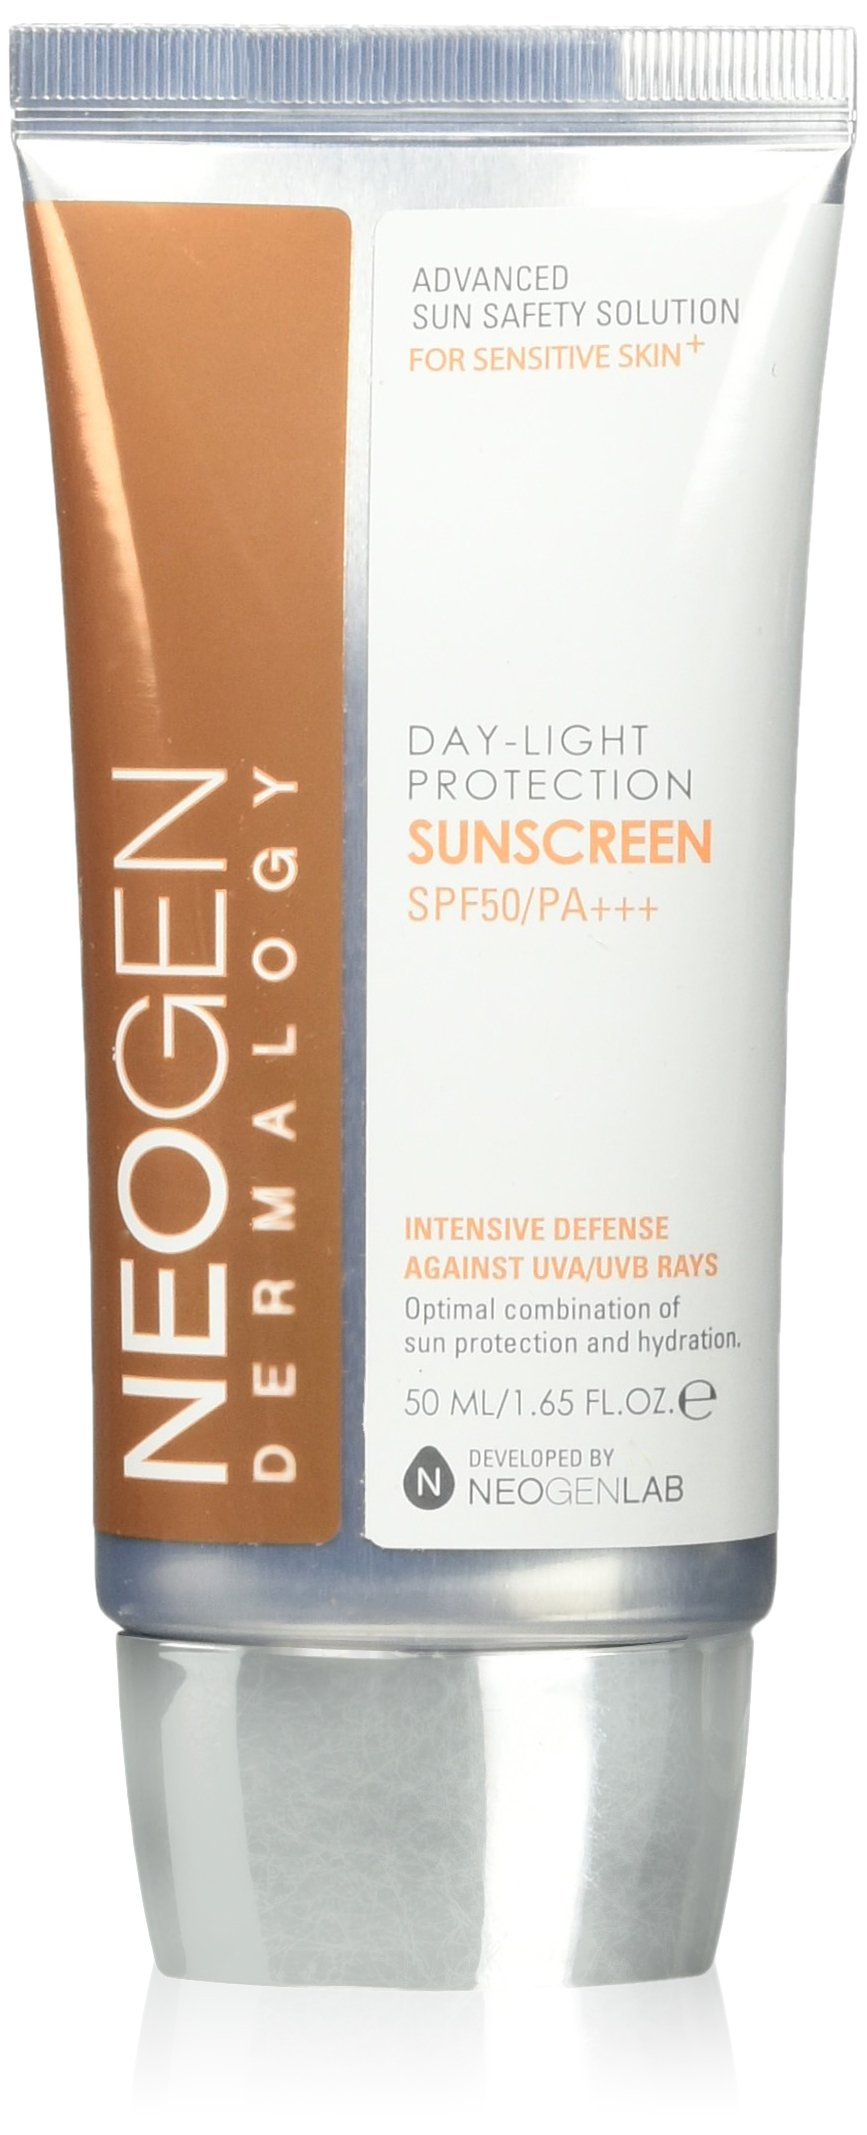 NEOGEN DERMALOGY DAY-LIGHT PROTECTION SUNSCREEN SPF 50+/PA+++ 1.65 oz / 50ml by NEOGEN DERMALOGY